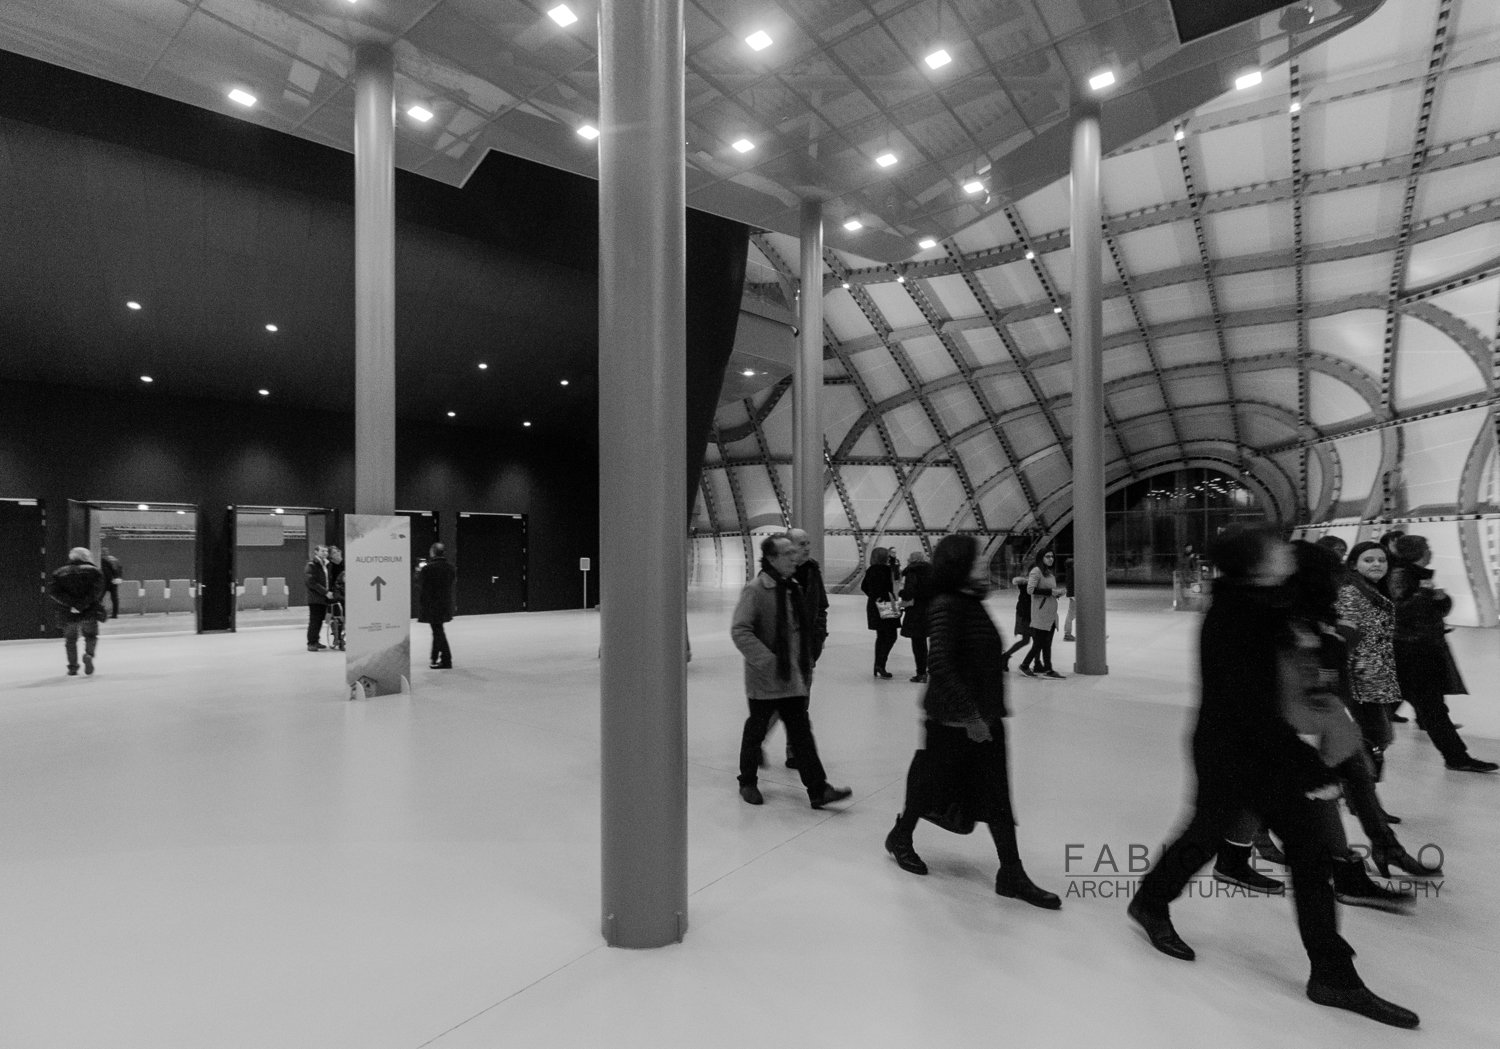 Convention Center - Rome The Cloud - Fuxas Studio - Auditorium Exit